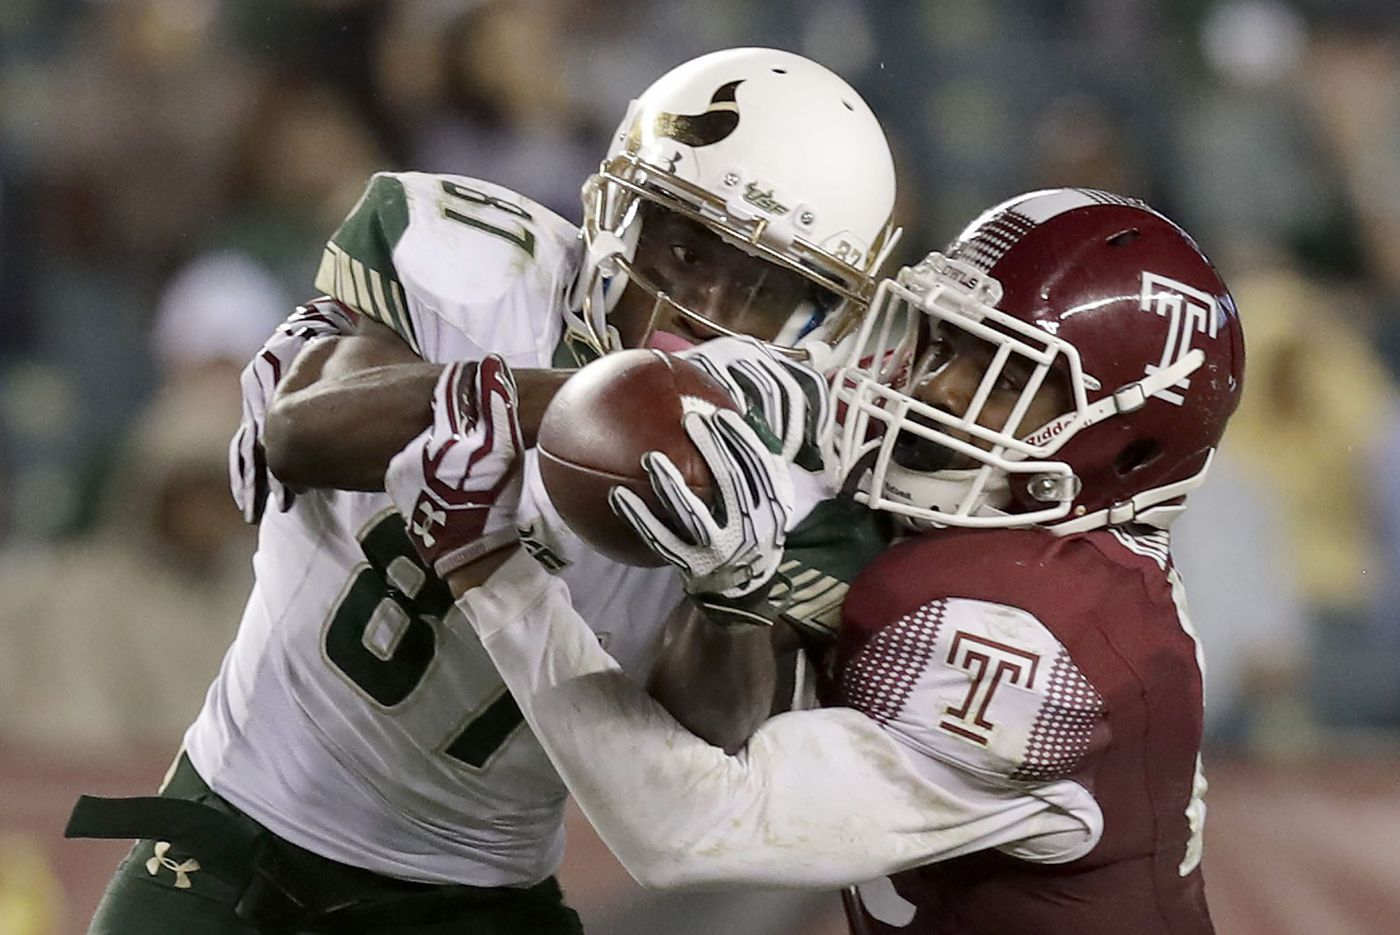 Temple's Delvon Randall ready for big, and healthy, senior season